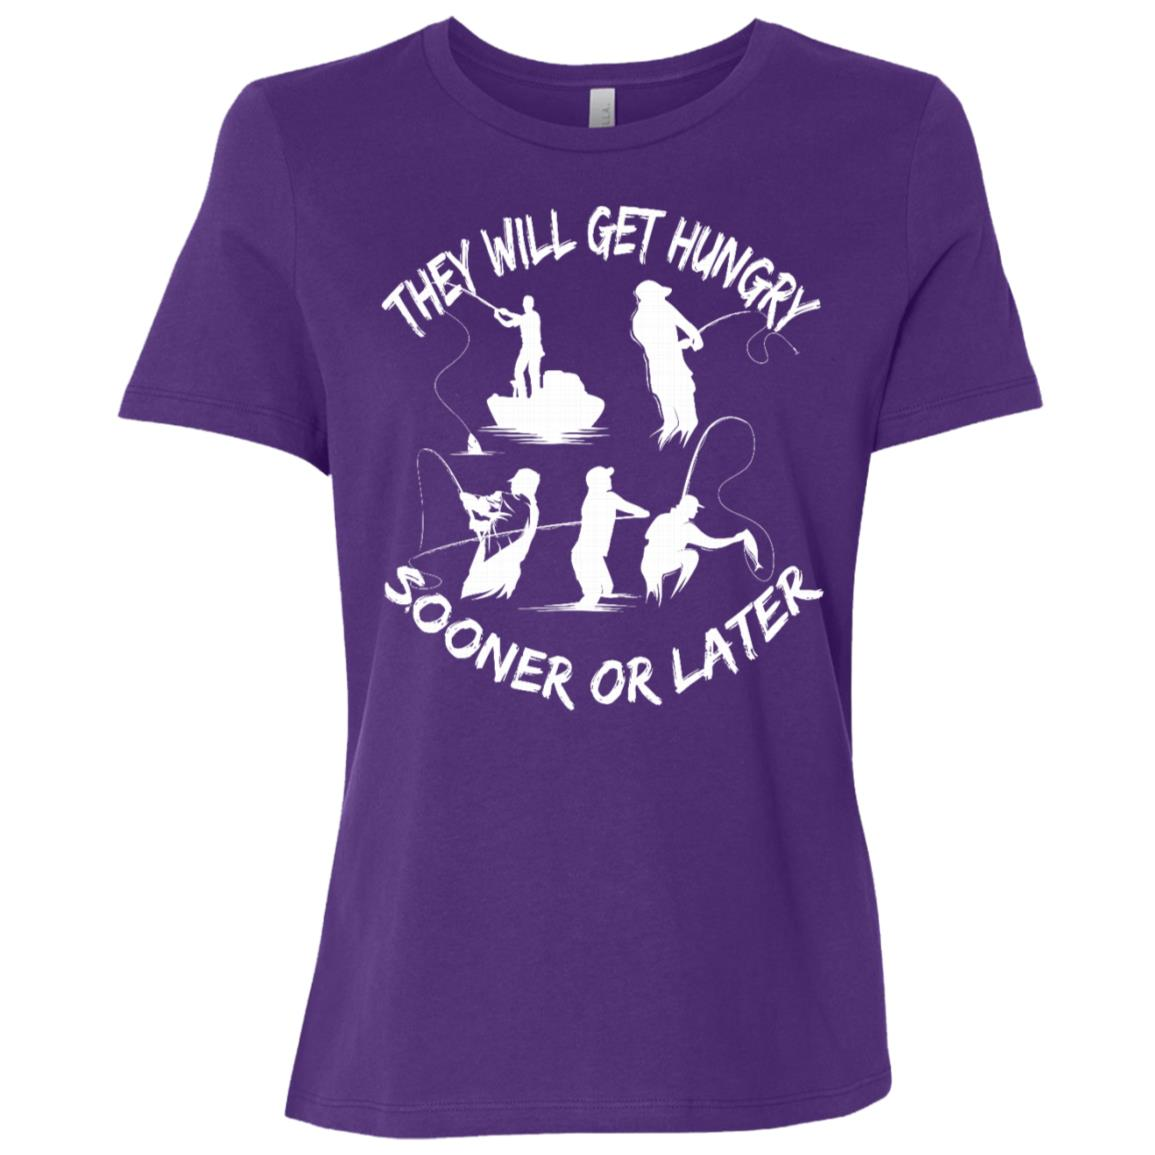 Funny Fishing Phrase Gifts for Fisherman Women Short Sleeve T-Shirt